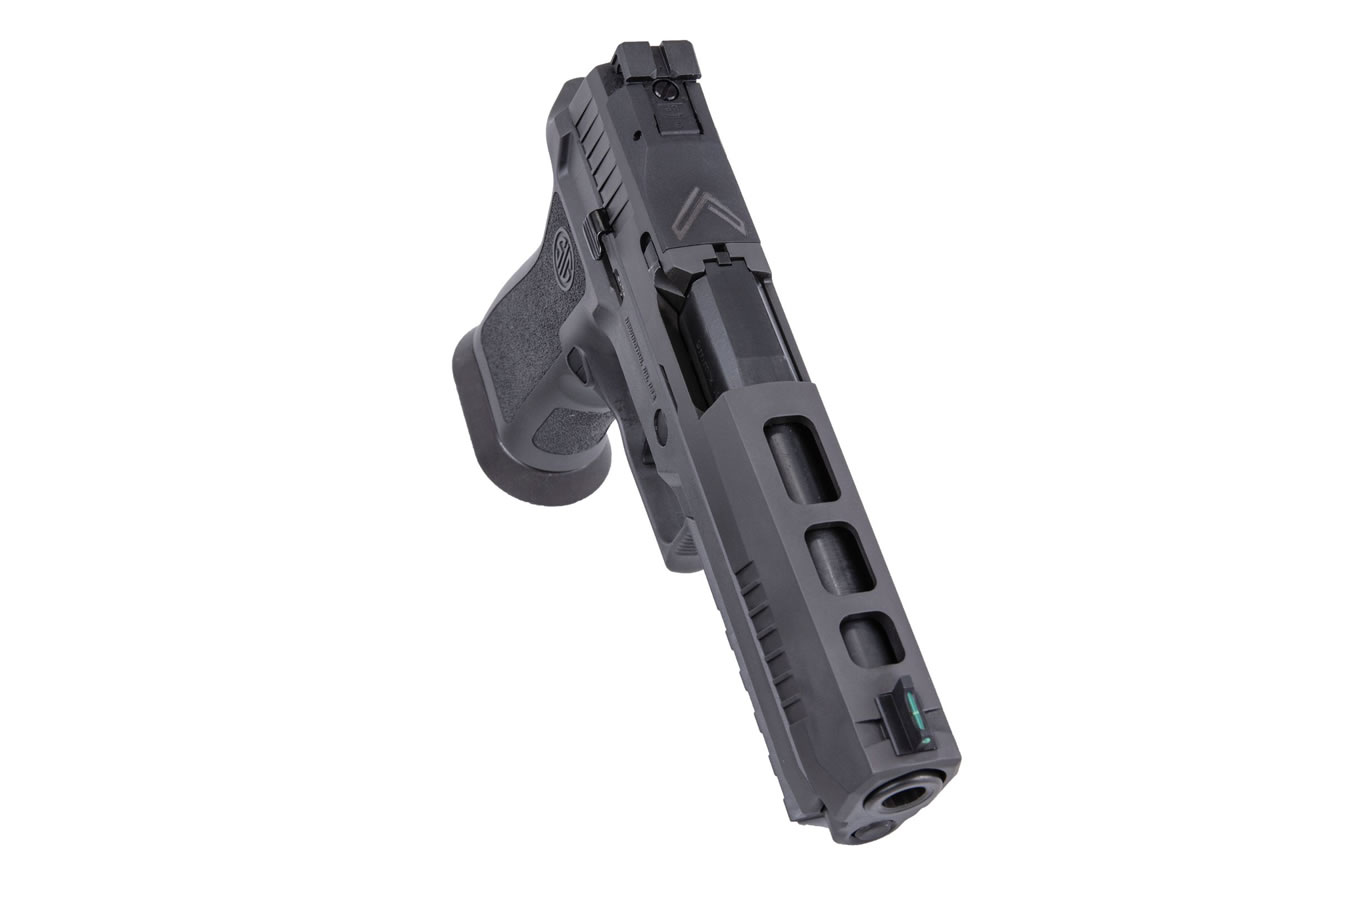 P320 X-Five Legion 9mm Full-Size Pistol with 3 Magazines